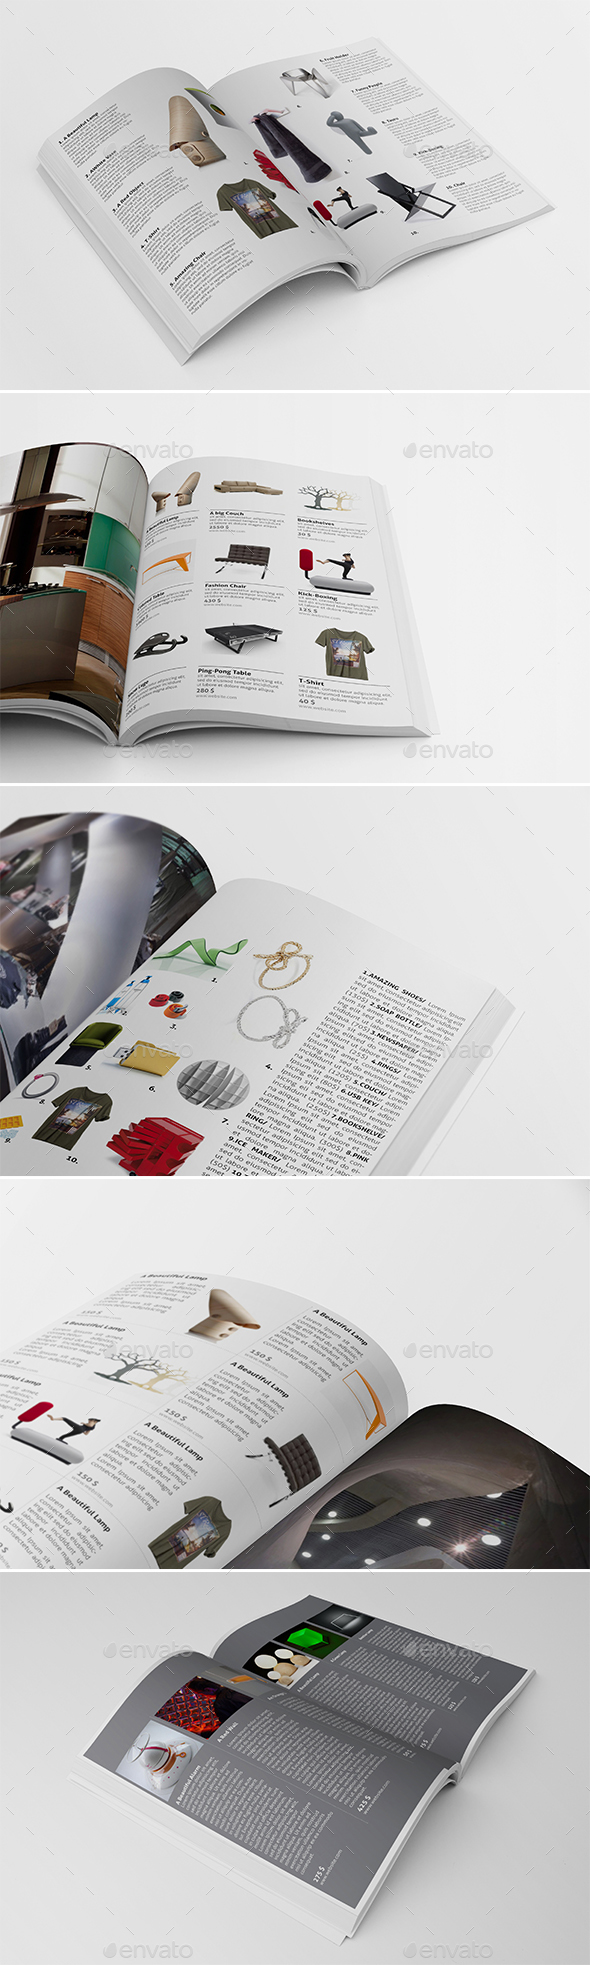 5 Different Products Showcase Layouts V.2 - Catalogs Brochures